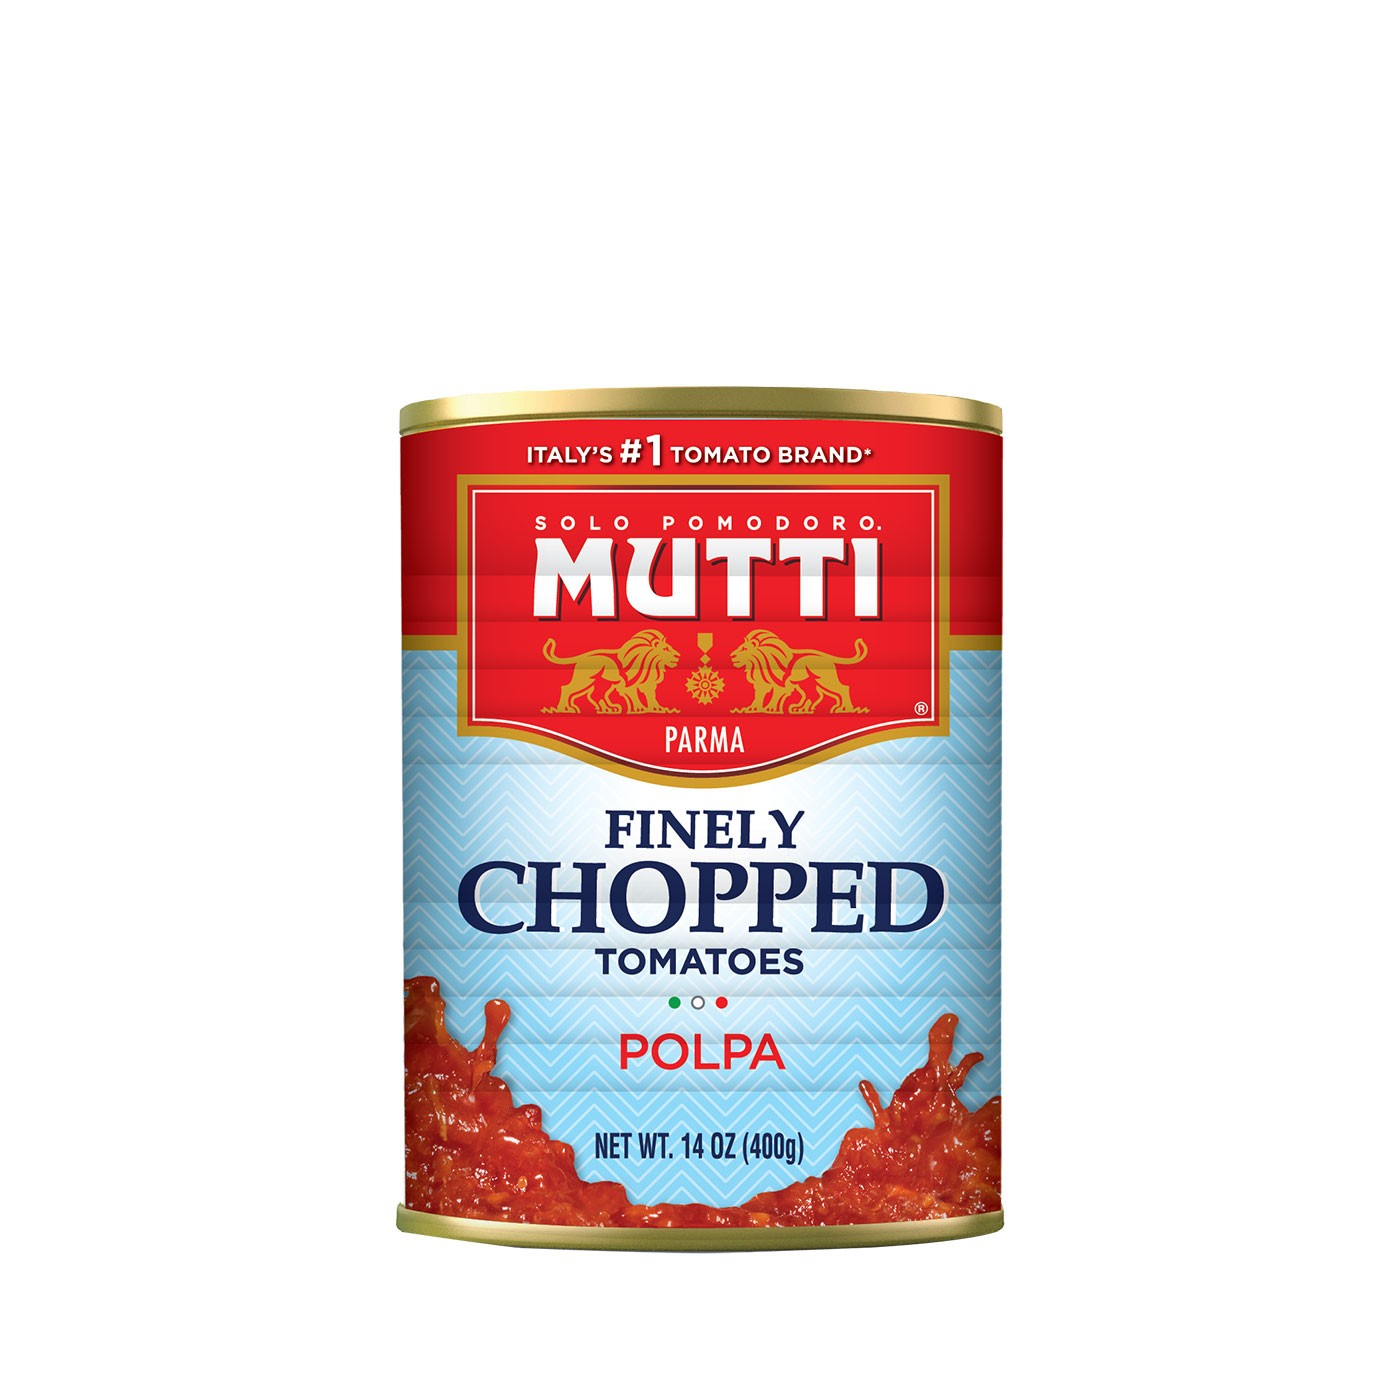 Finely Chopped Tomatoes 14 oz - Mutti   Eataly.com